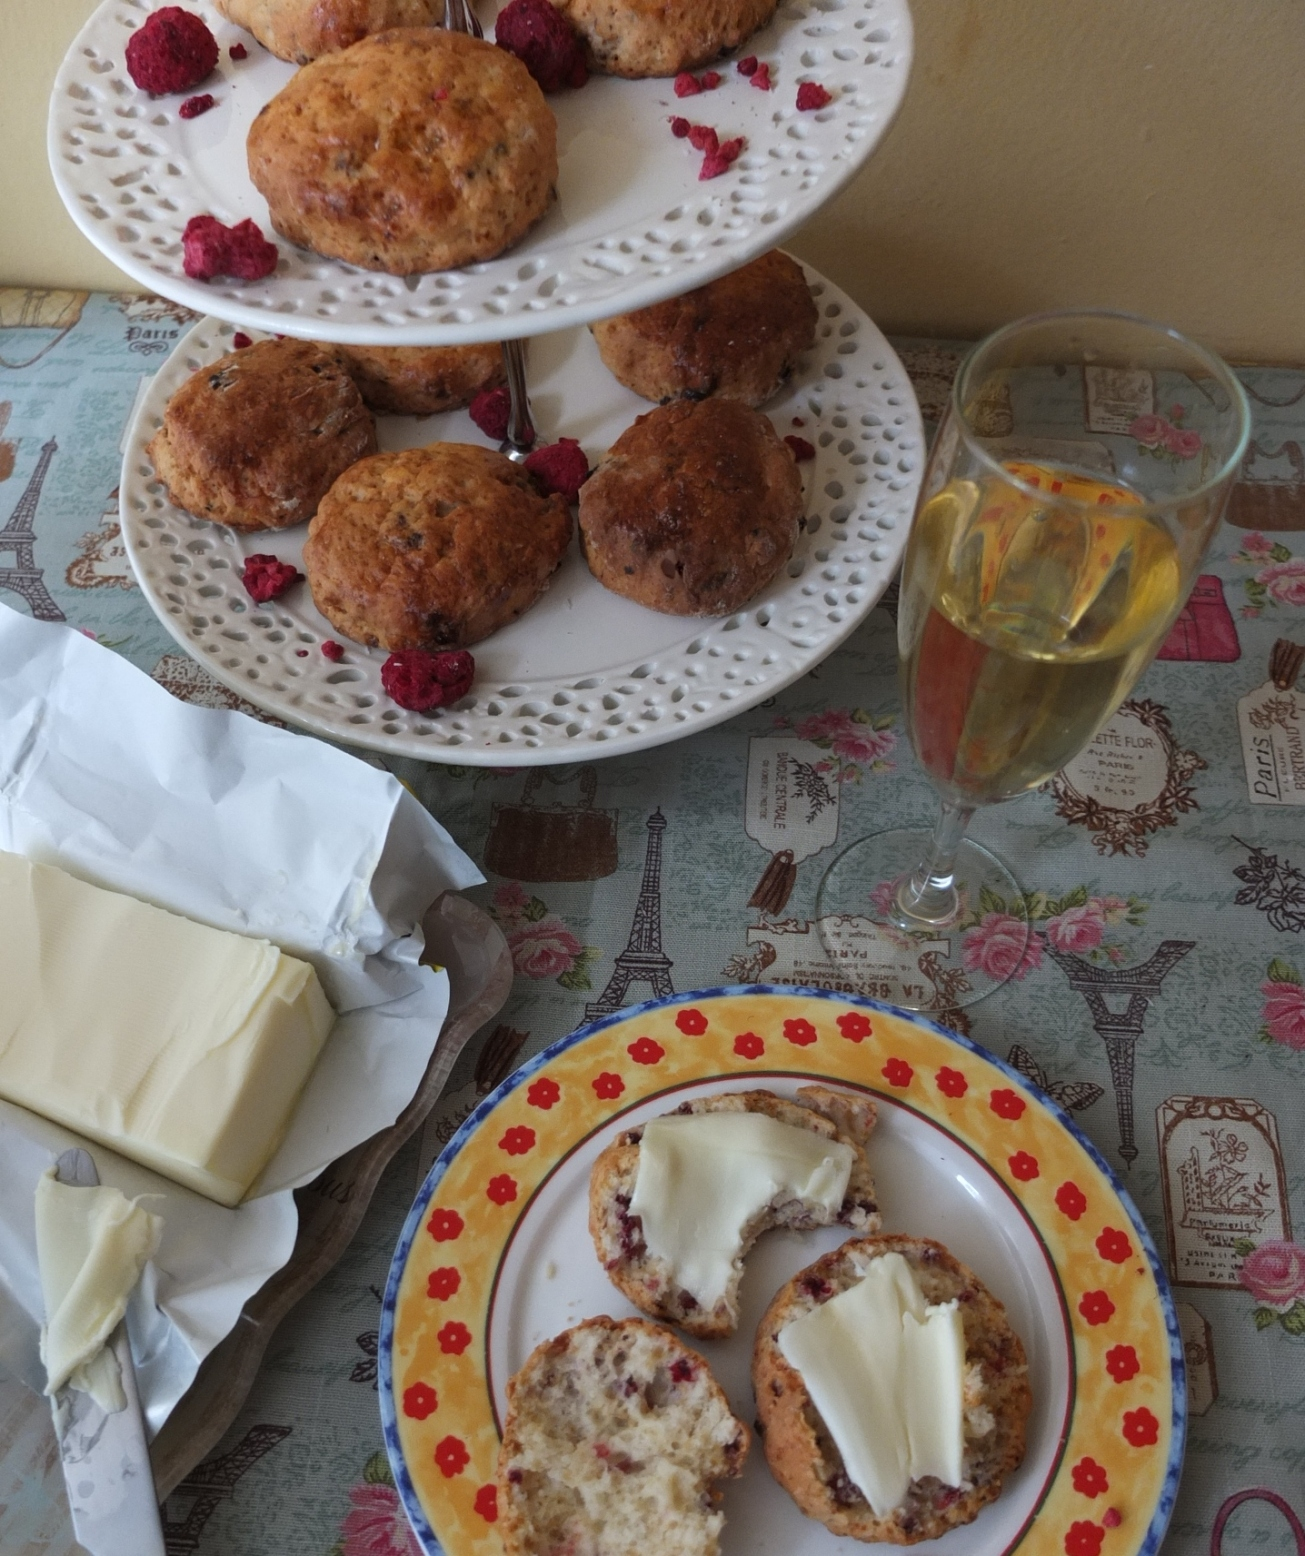 Afternoon champagne tea with Ispahan scones